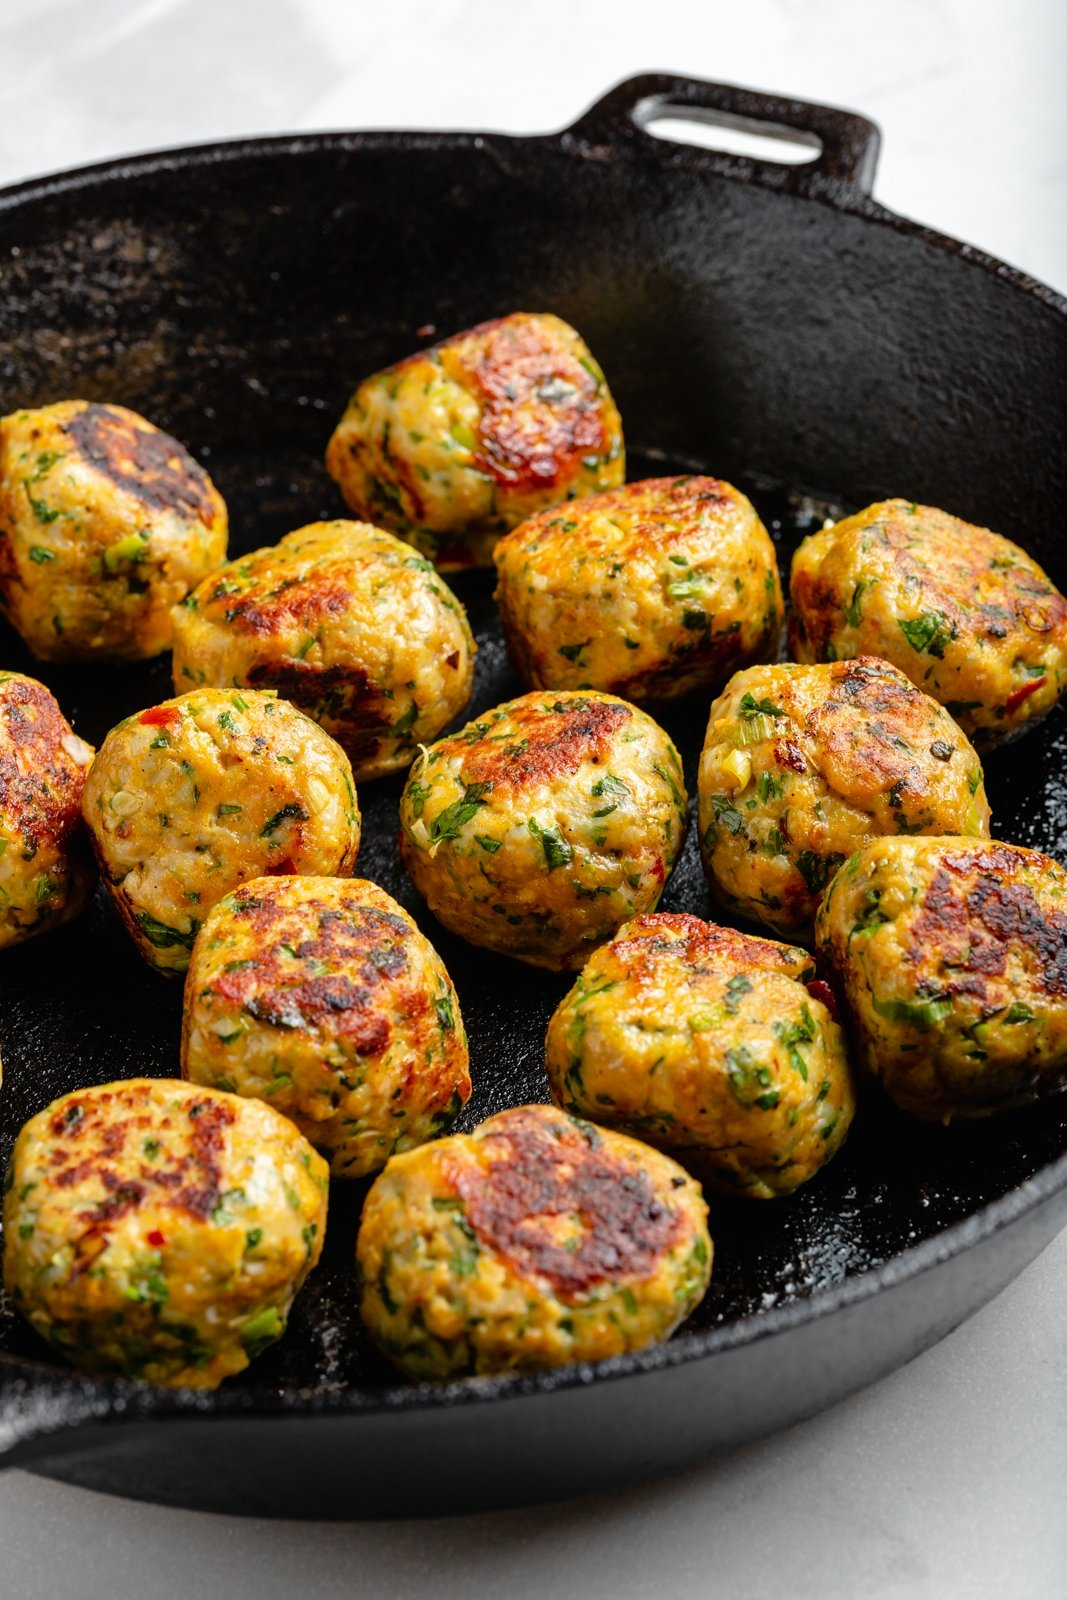 browning chicken meatballs in a skillet